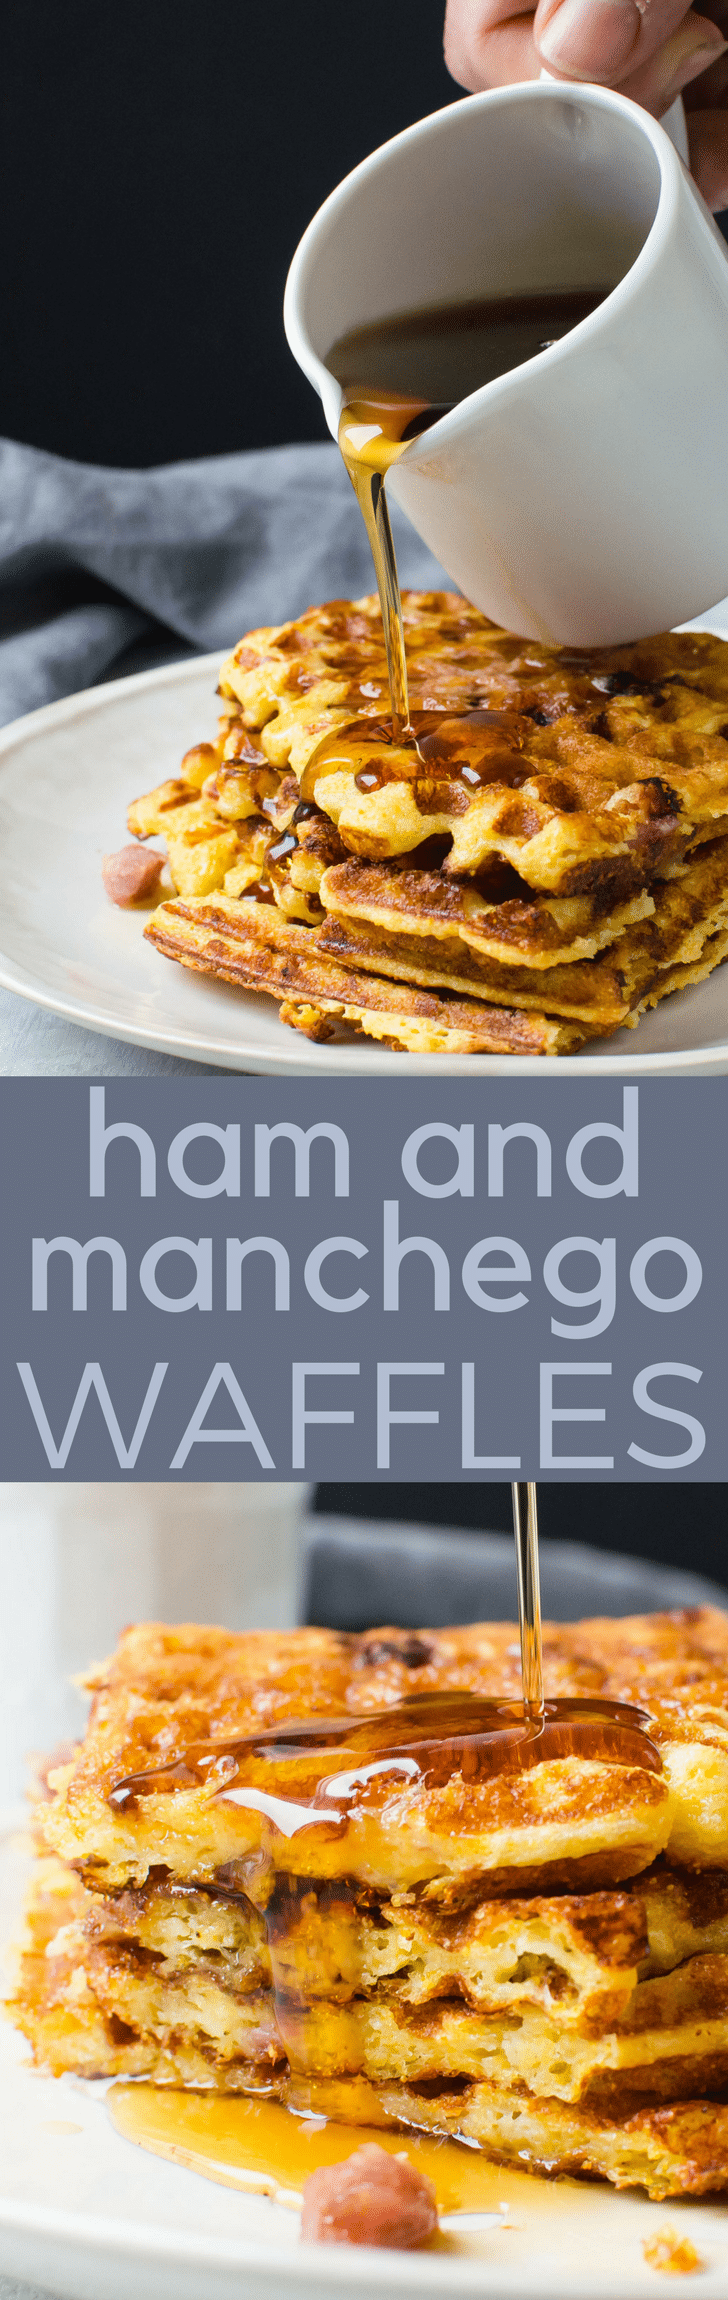 A sweet and savory buttermilk waffle recipe with cornmeal, manchego cheese and diced ham, this breakfast and brunch treat is made for the weekend! Ham and Manchego Waffles are easy to make, too. #waffles, #breakfast #brunch #sweetandsavory #sweetbreakfastrecipe #savorybreakfastrecipe #ham #manchego #cornmealwaffles #buttermilkwaffles #buttermilkwafflerecipe #cornmealwafflerecipe #syrup #breakfastfordinner